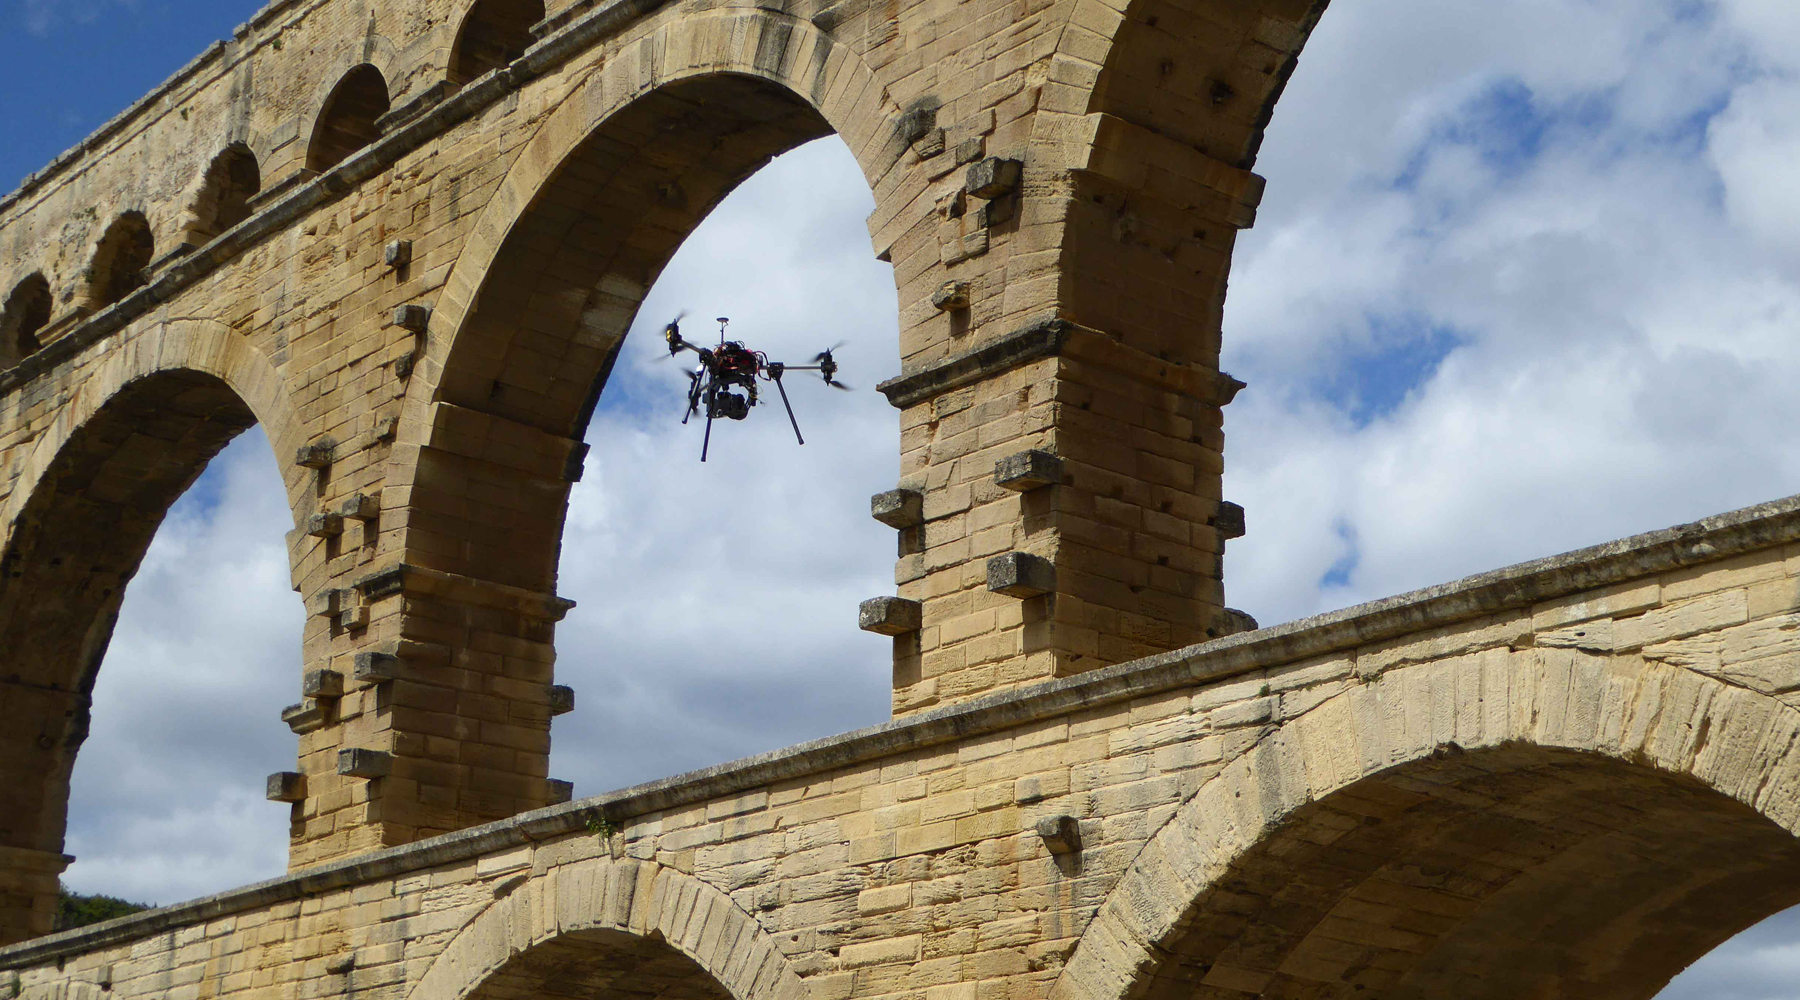 02 Pont du Gard - Aerial surveys by drone